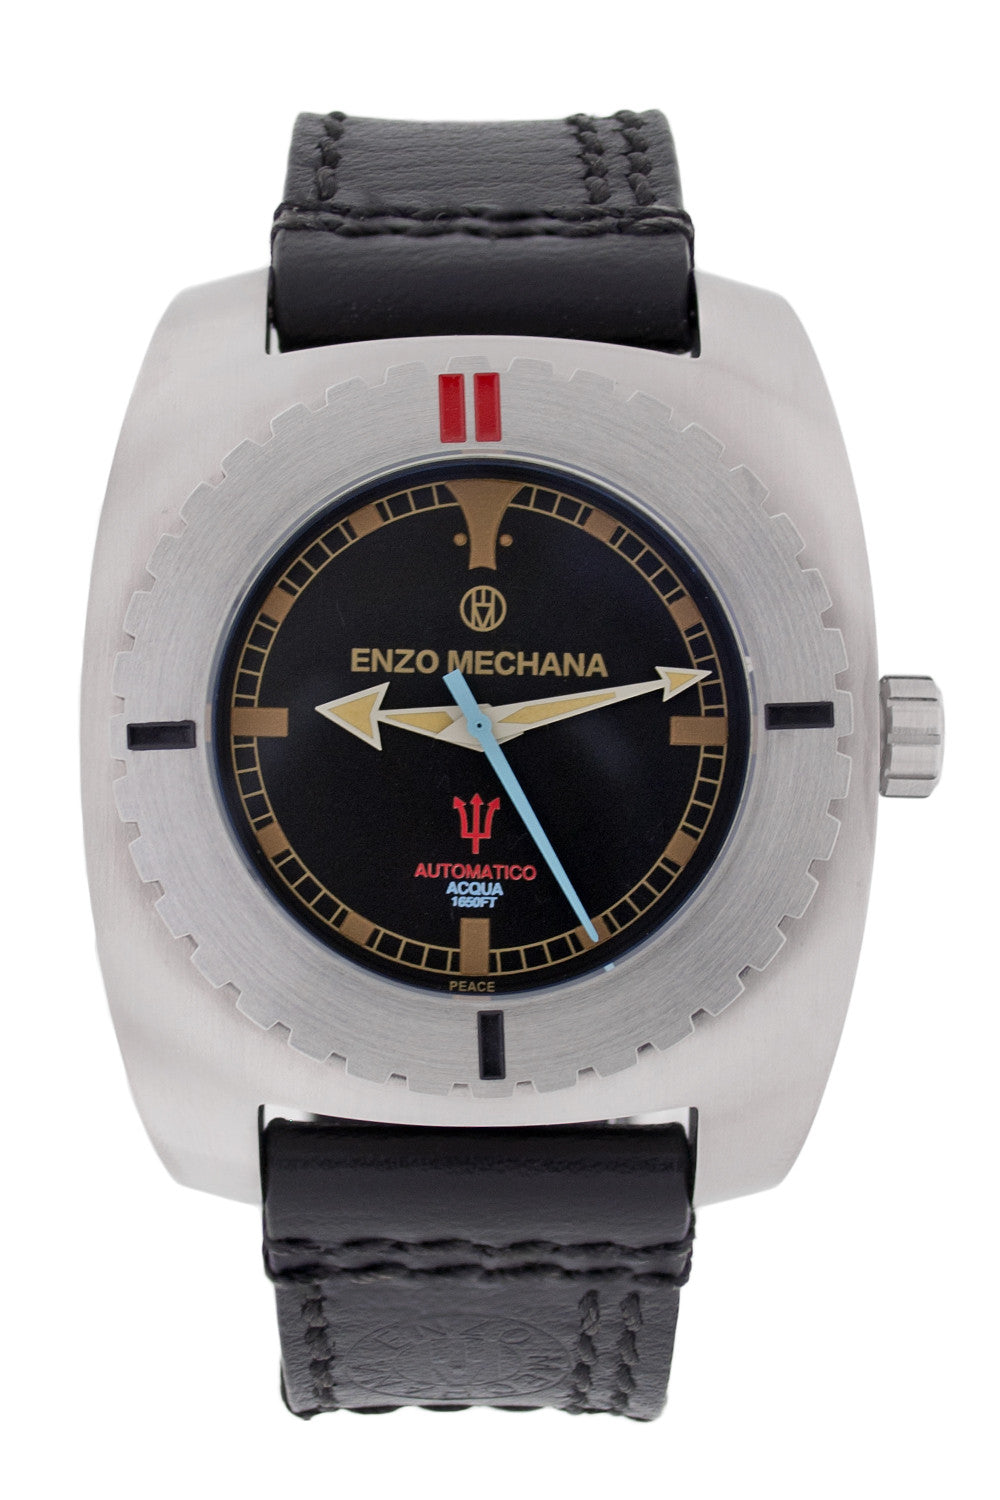 Enzo Mechana ACQUA 500m Automatic Watch - BLACK Dial